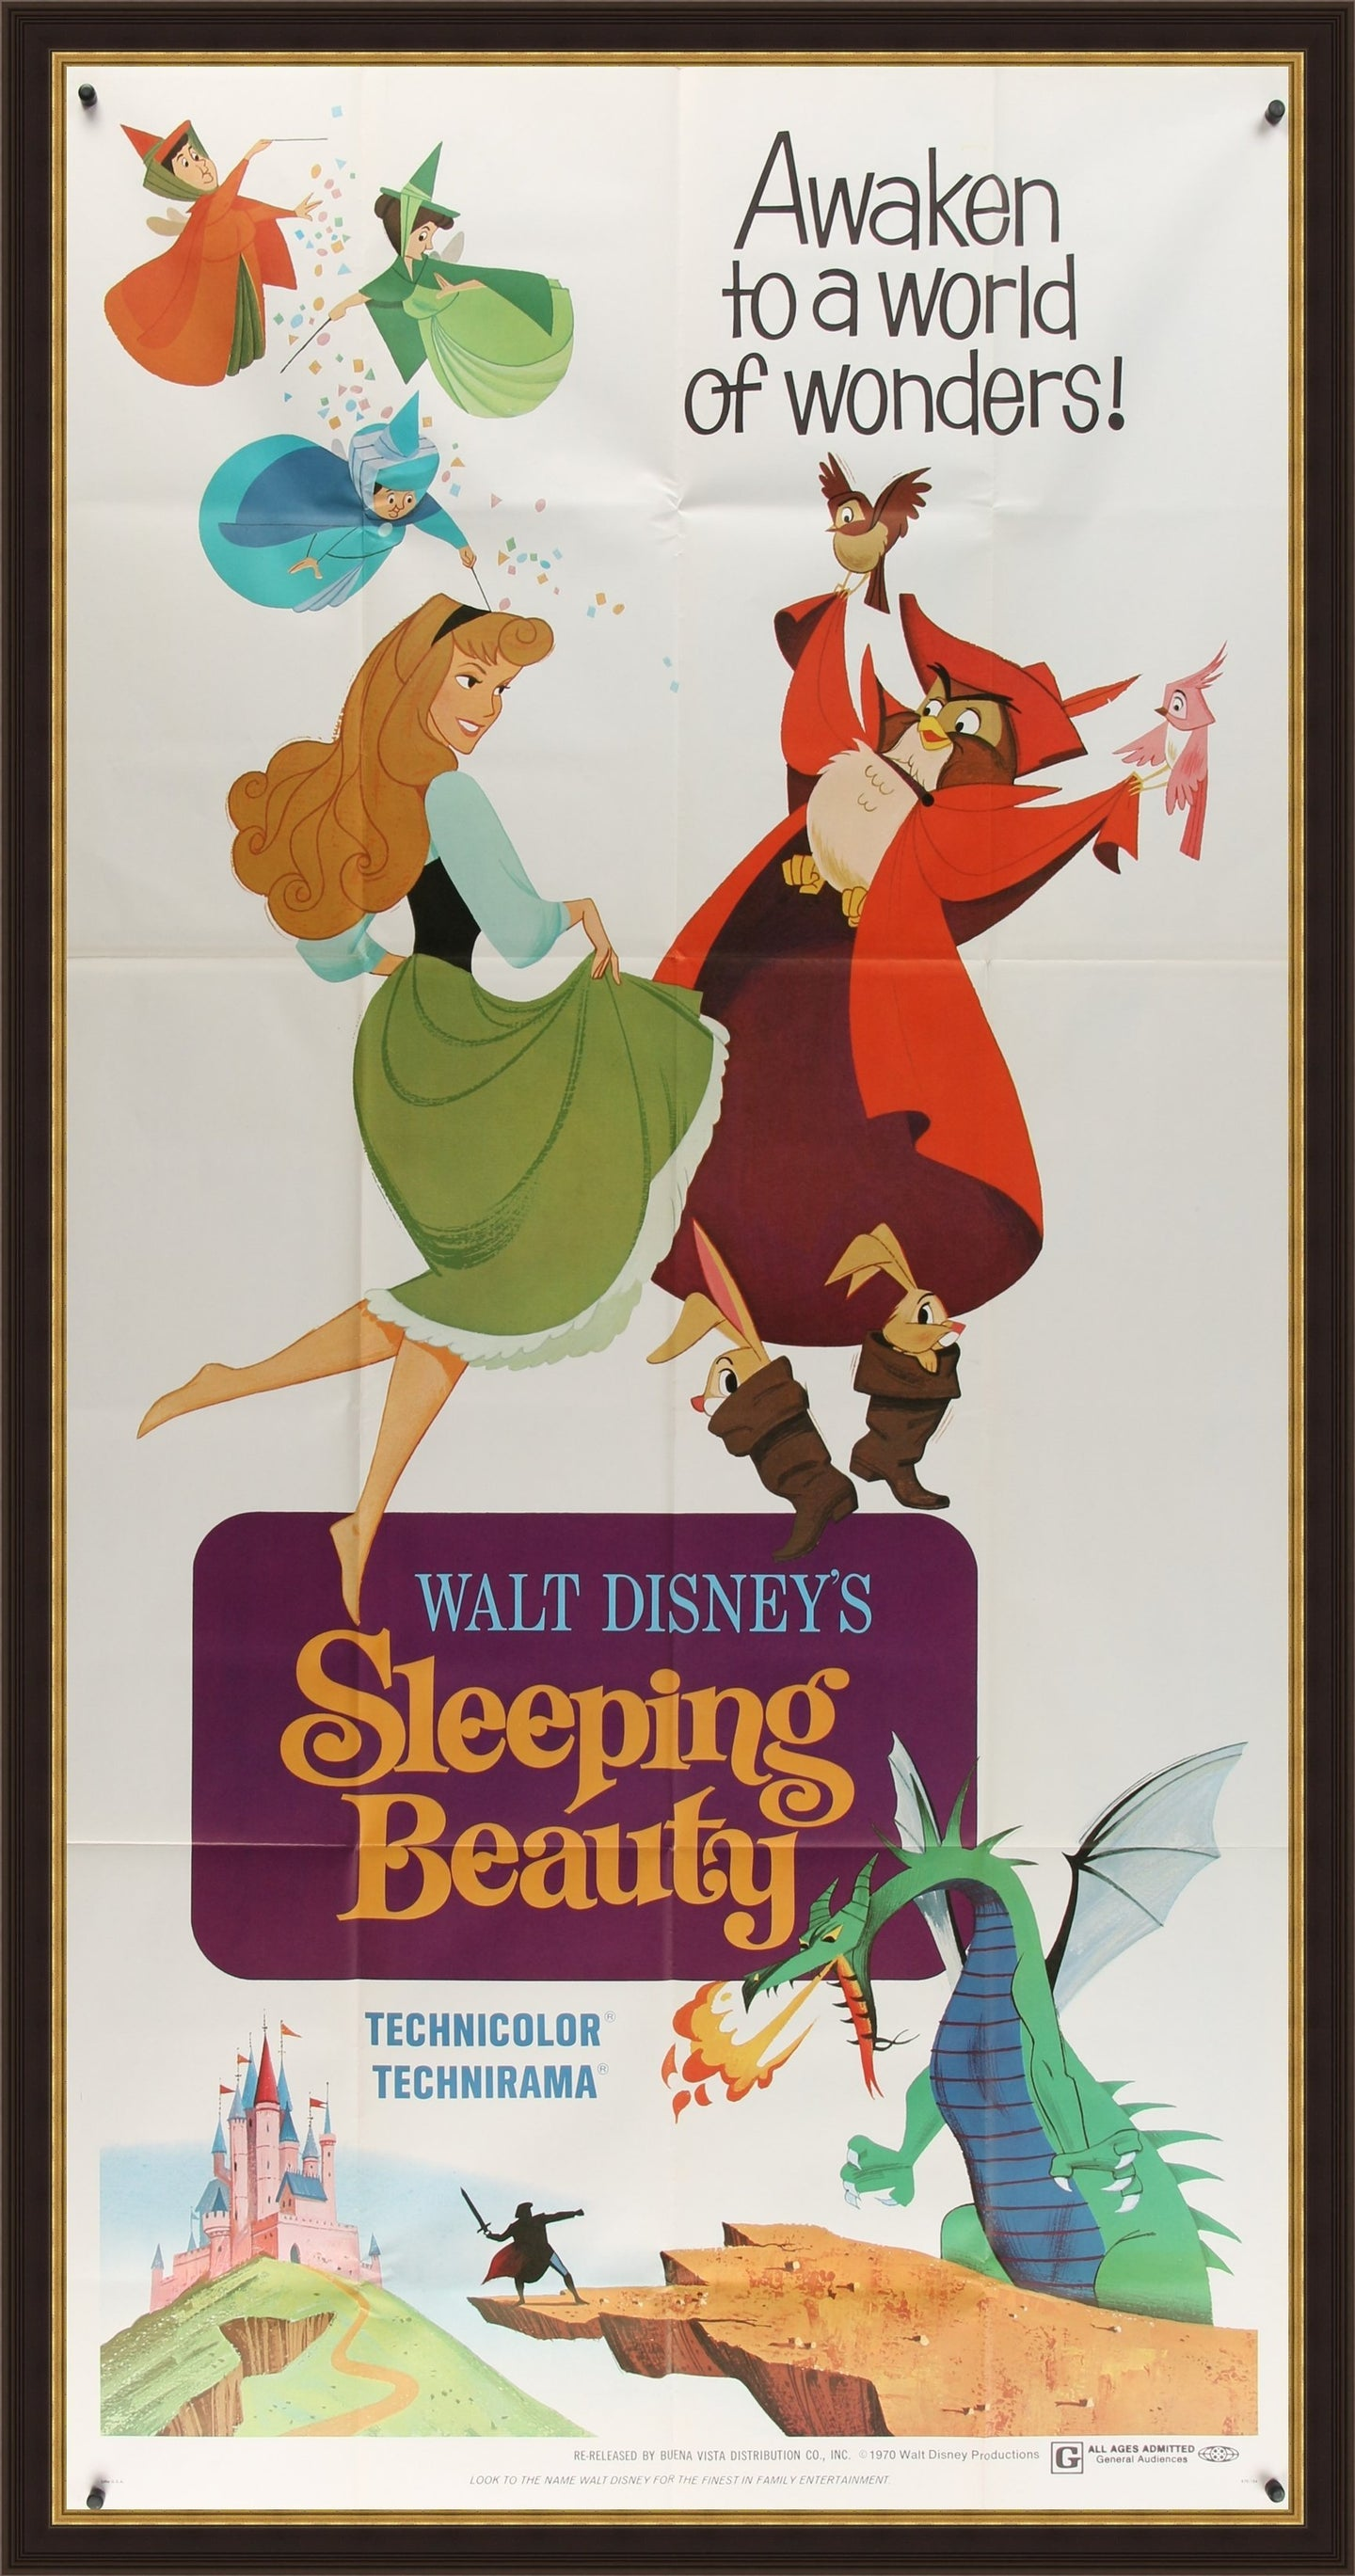 An original three sheet movie poster for the Disney film Sleeping Beauty